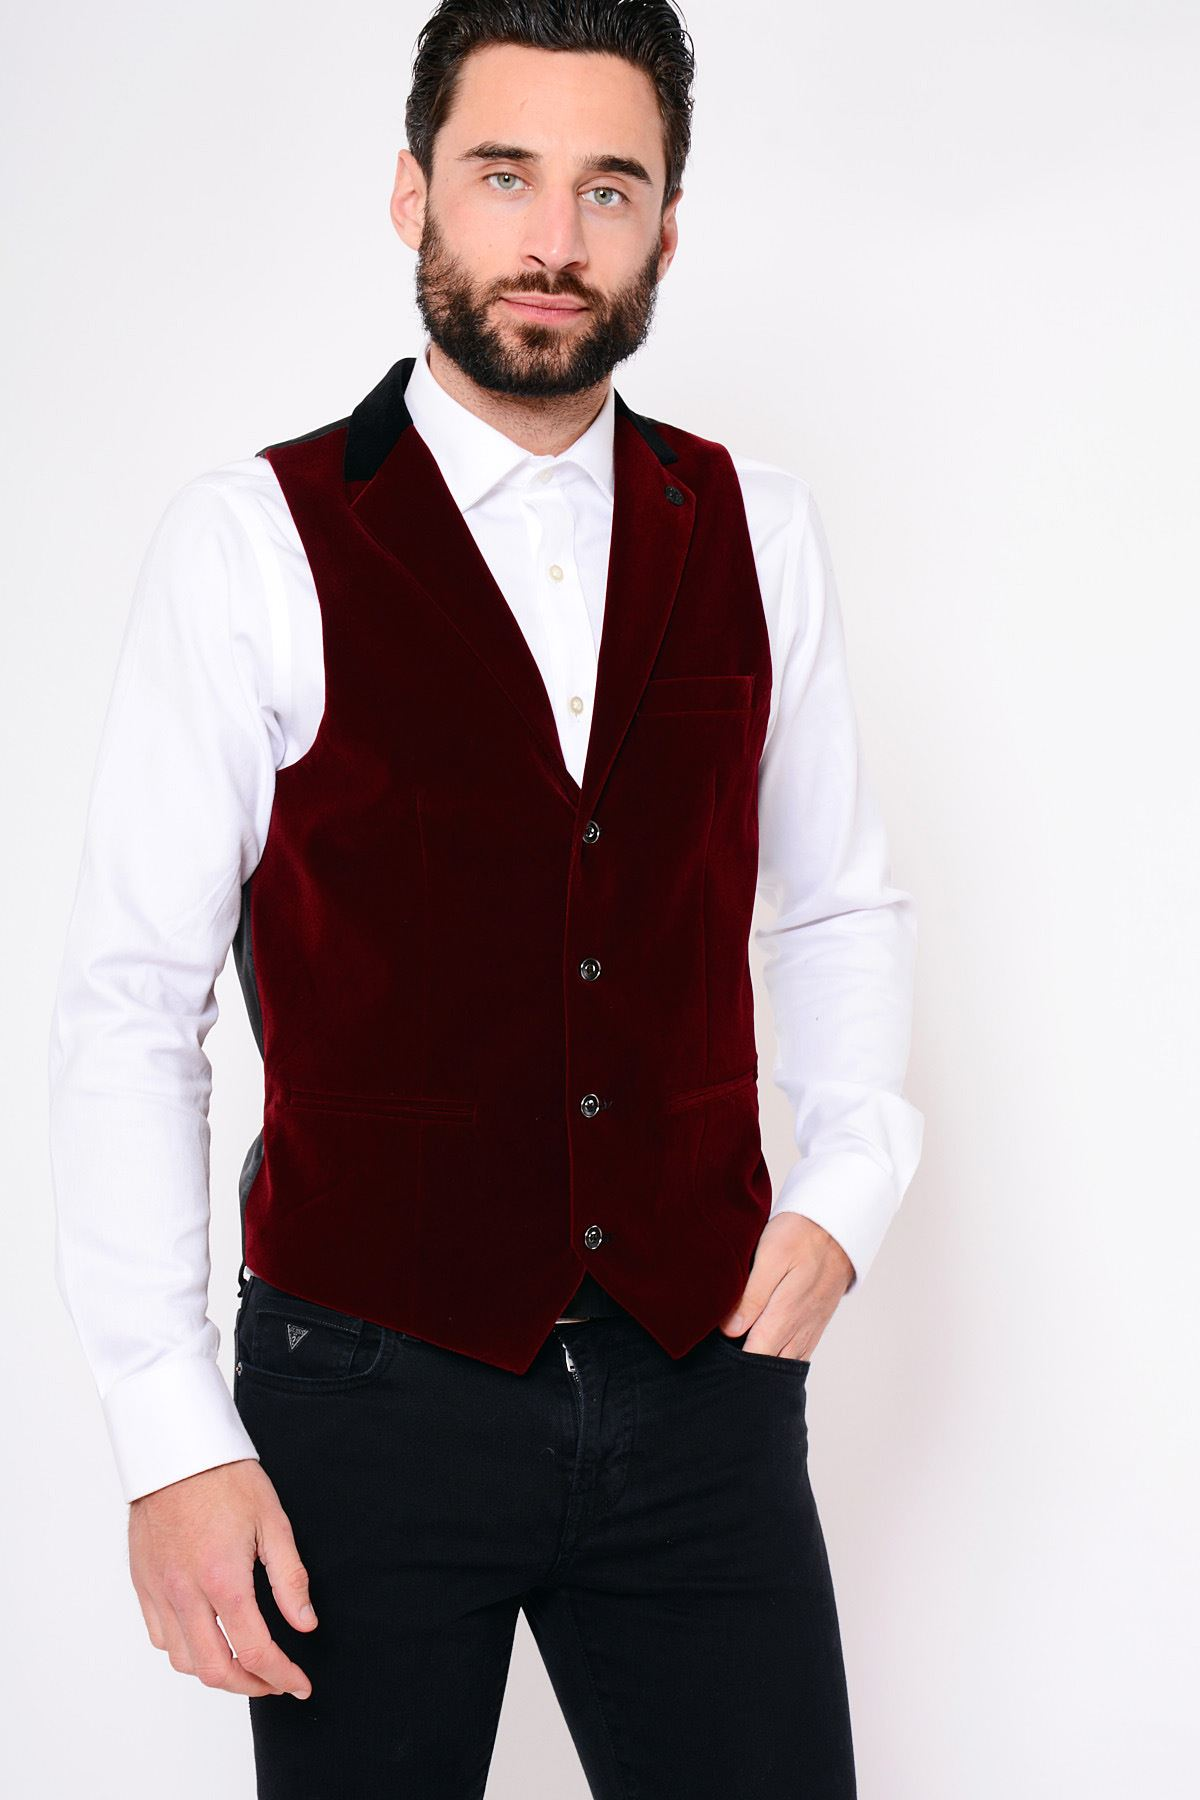 460e44484cdd Details about Mens Wine Collared Velvet Waistcoat Marc Darcy Formal Casual  Tailored Party Vest